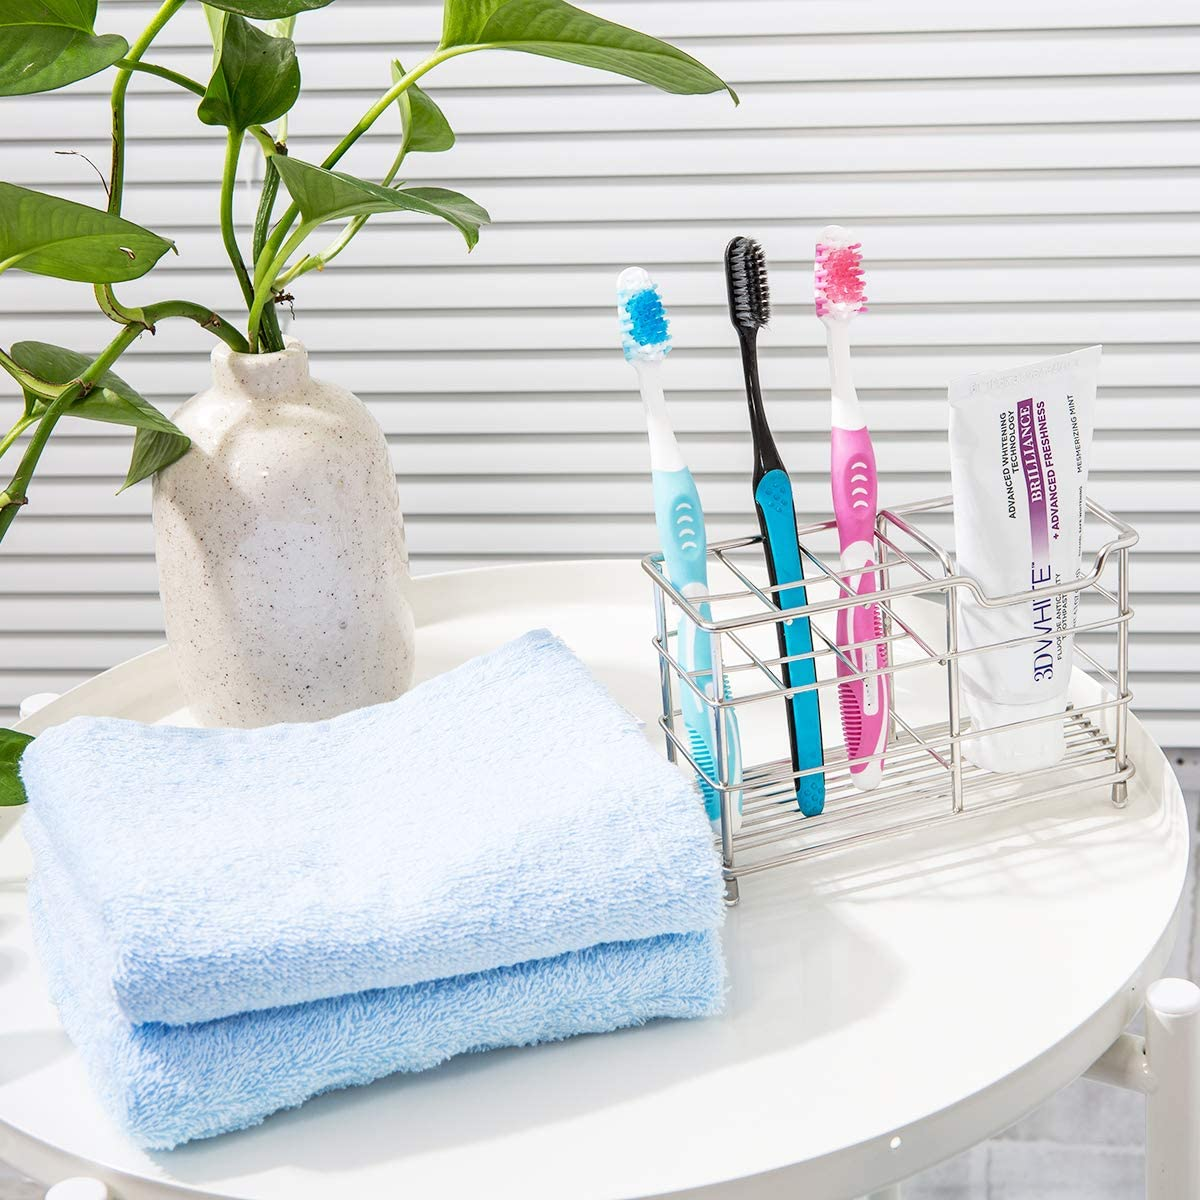 Amazer Toothbrush Holder Stainless Steel Rustproof Metal Bathroom Toothpaste Holder Stand with Multi-Functional 7 Slots for Toothbrush Toothpaste Cleanser: Kitchen & Dining